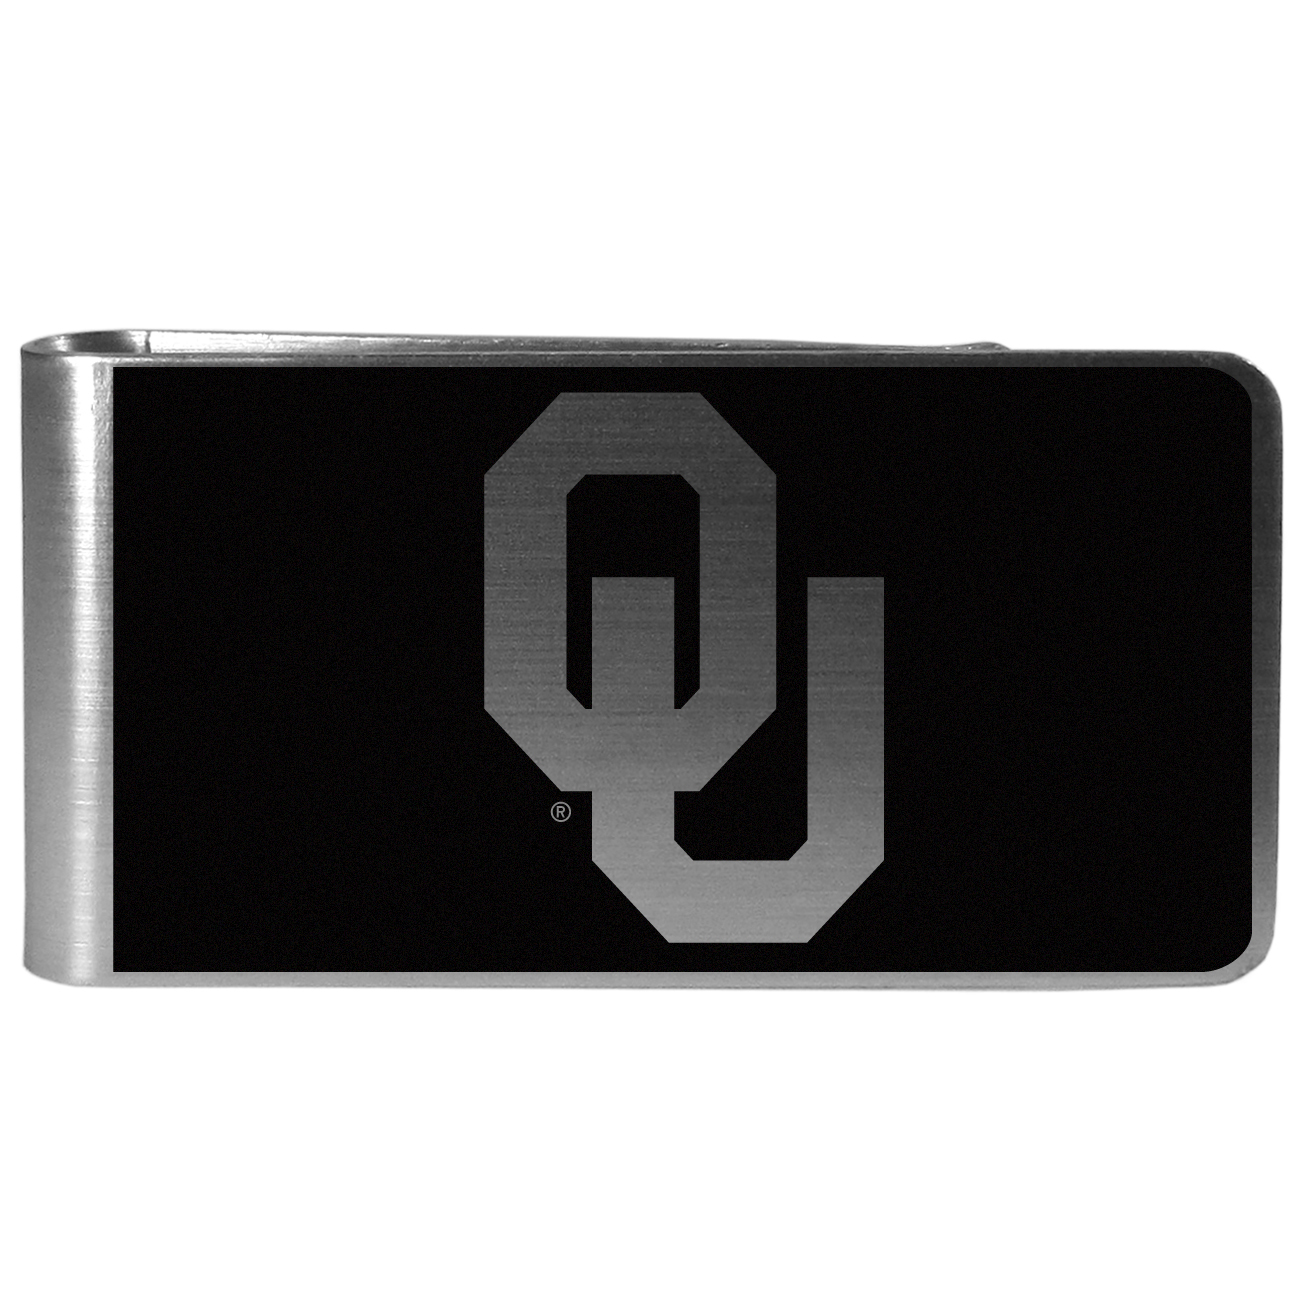 Oklahoma Sooners Black and Steel Money Clip - Our monochromatic steel money clips have a classic style and superior quality. The strong, steel clip has a black overlay of the Oklahoma Sooners logo over the brushed metal finish creating a stylish men's fashion accessory that would make any fan proud.